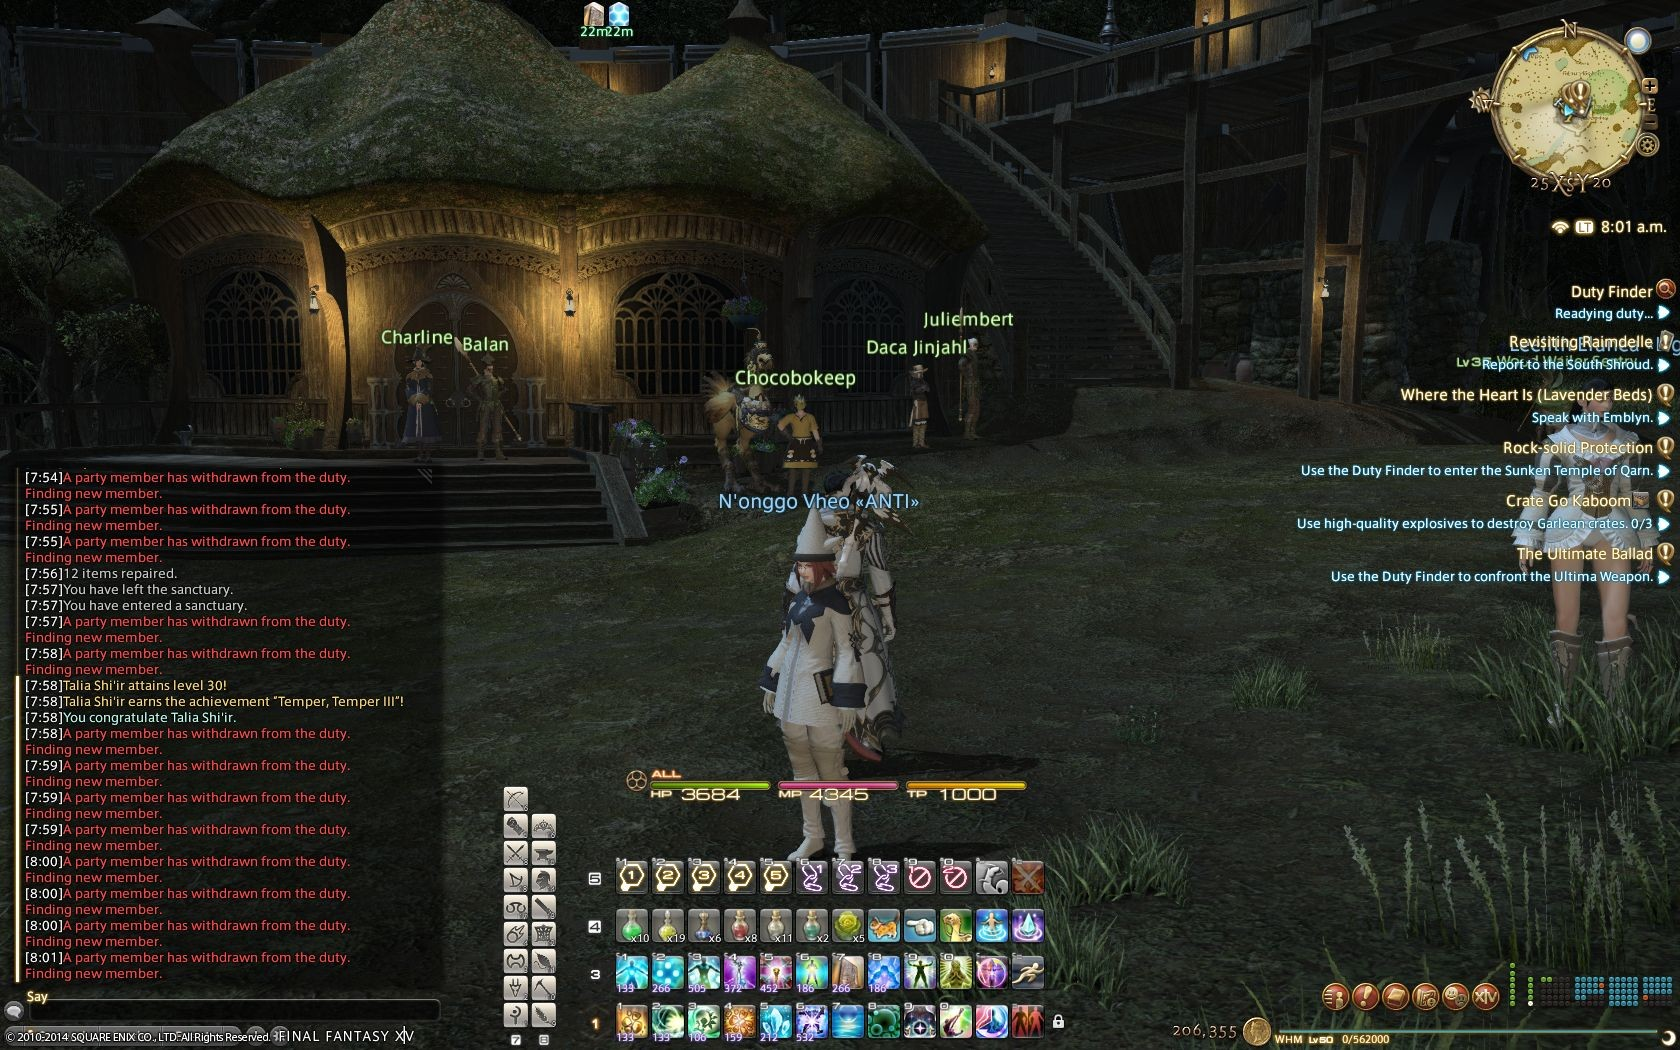 Final Fantasy XIV: A Realm Reborn - FFXIV's awesome queue system where one player can screw it up for 23 others.